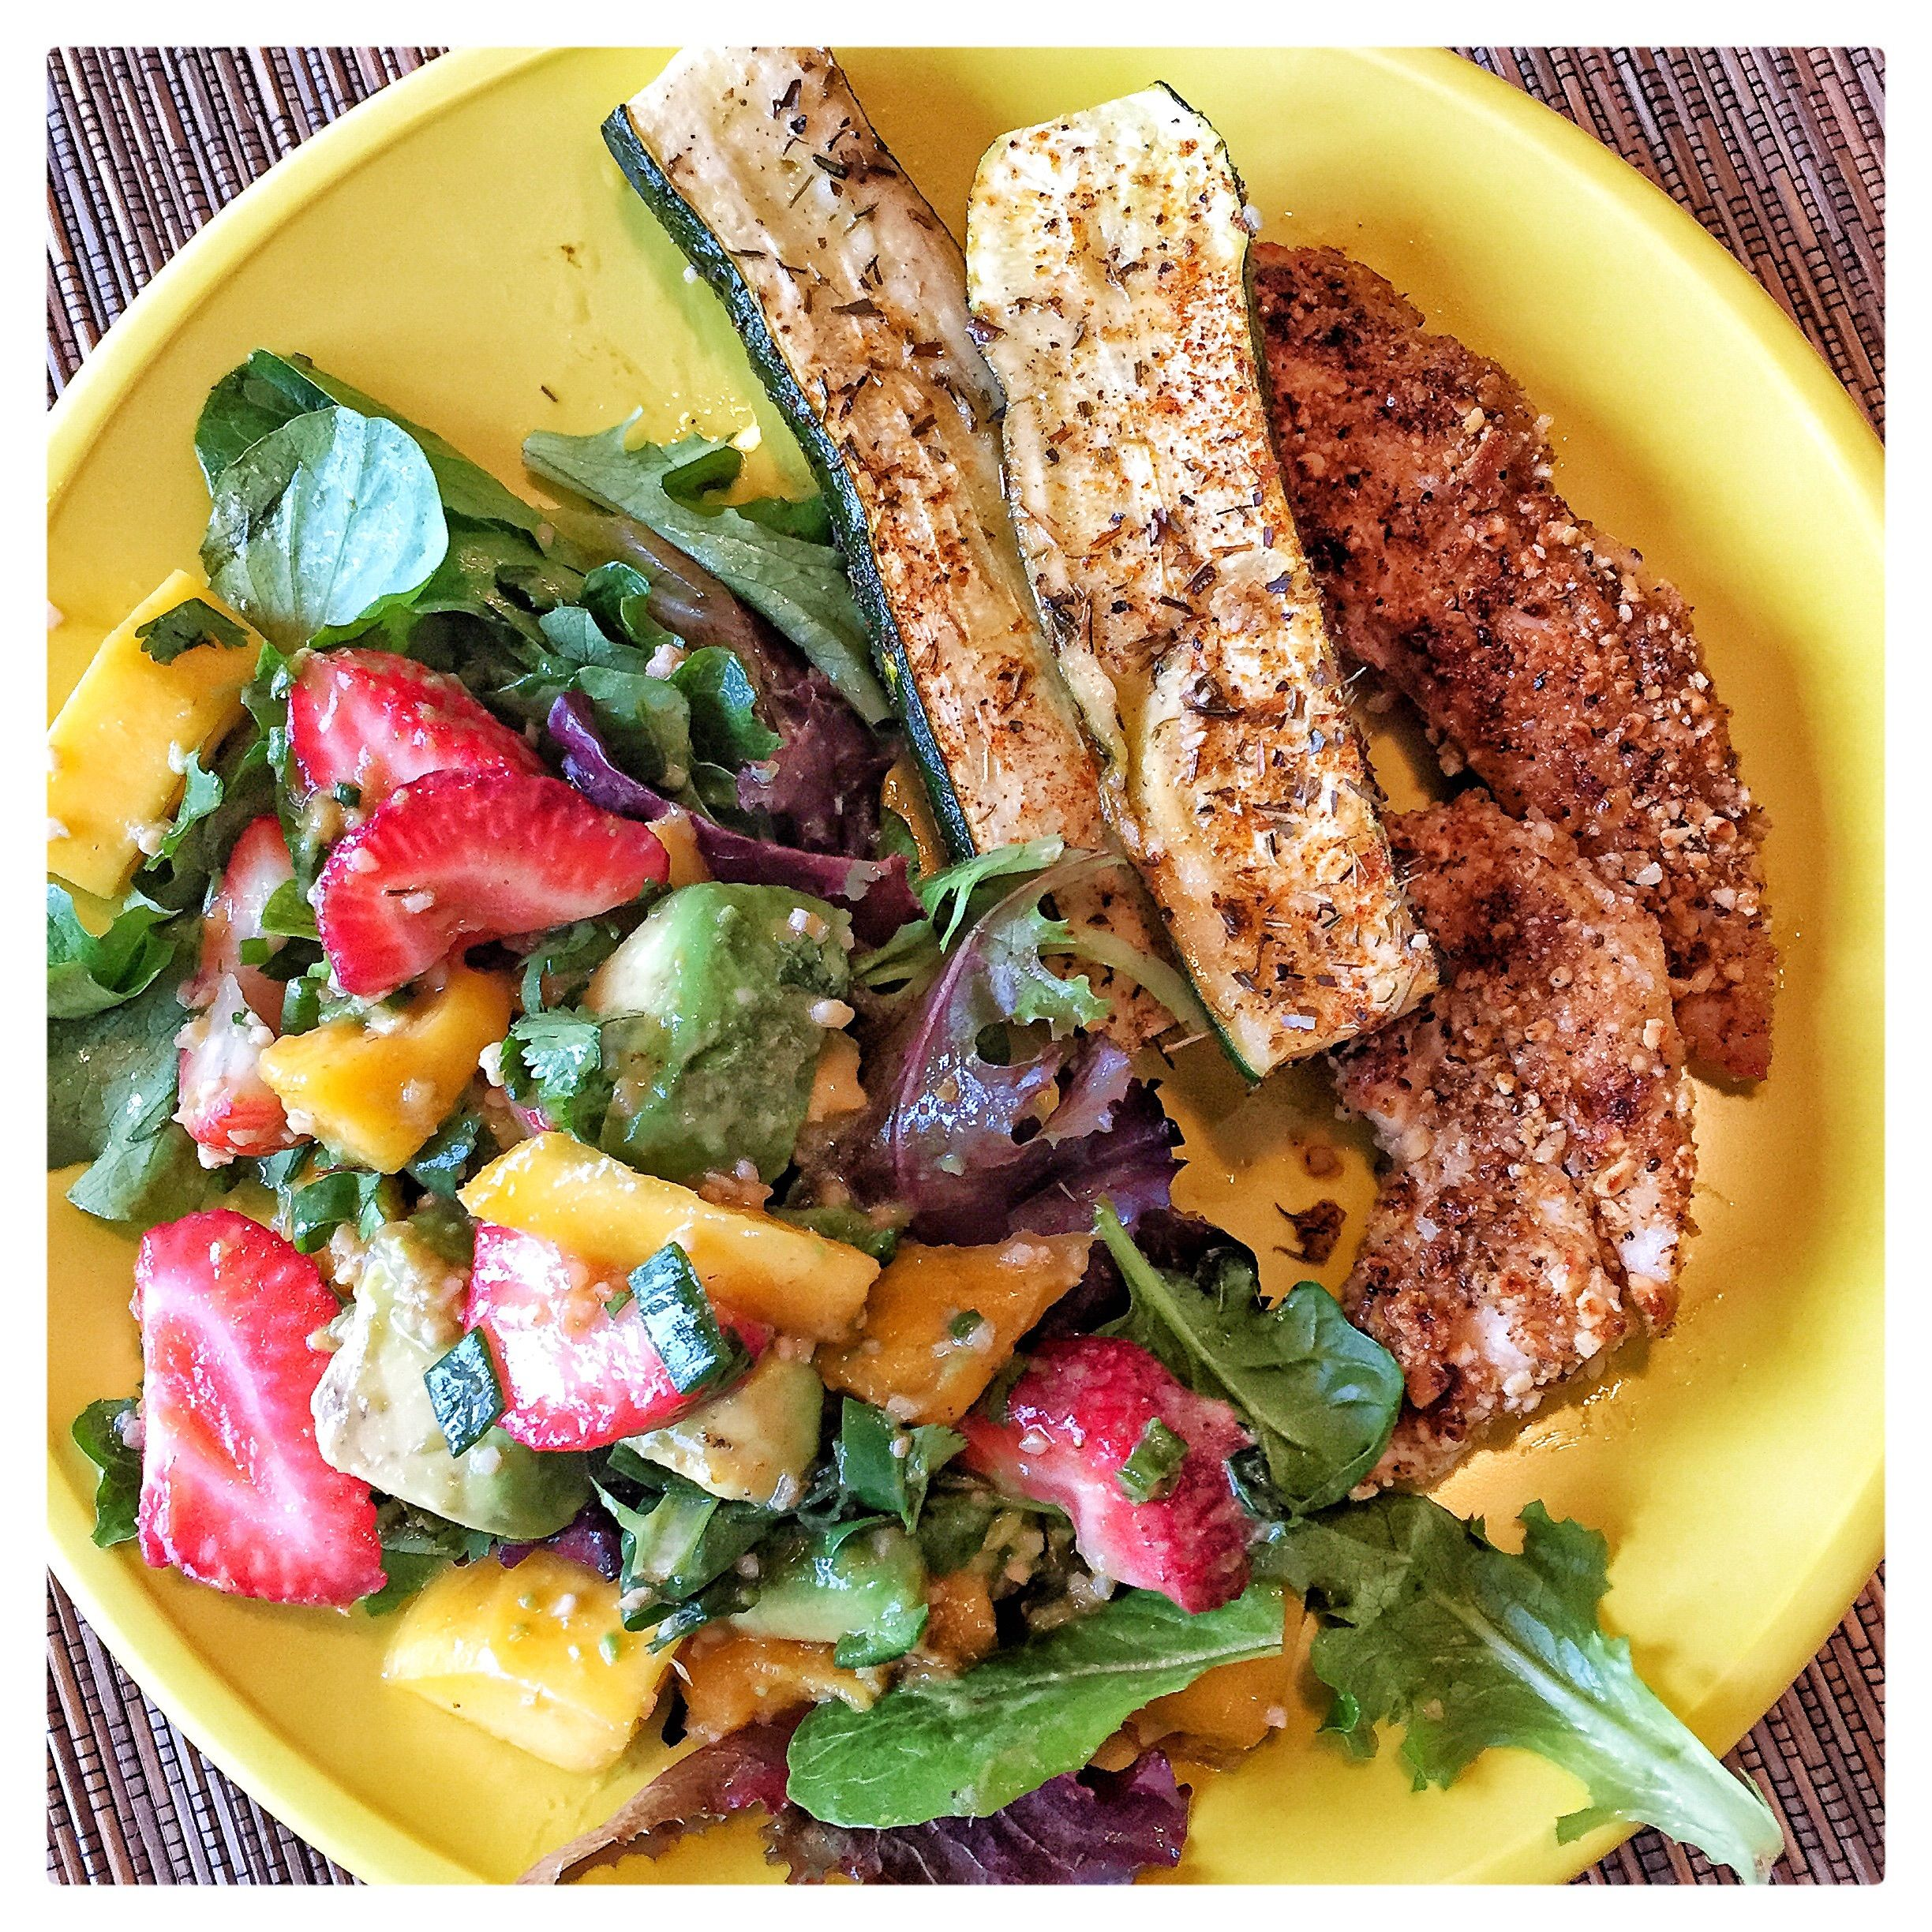 """You've got to try these Whole 30/Paleo friendly crispy """"breaded"""" chicken strips! I just made them last night when we had company over and they were received with great approval :)"""